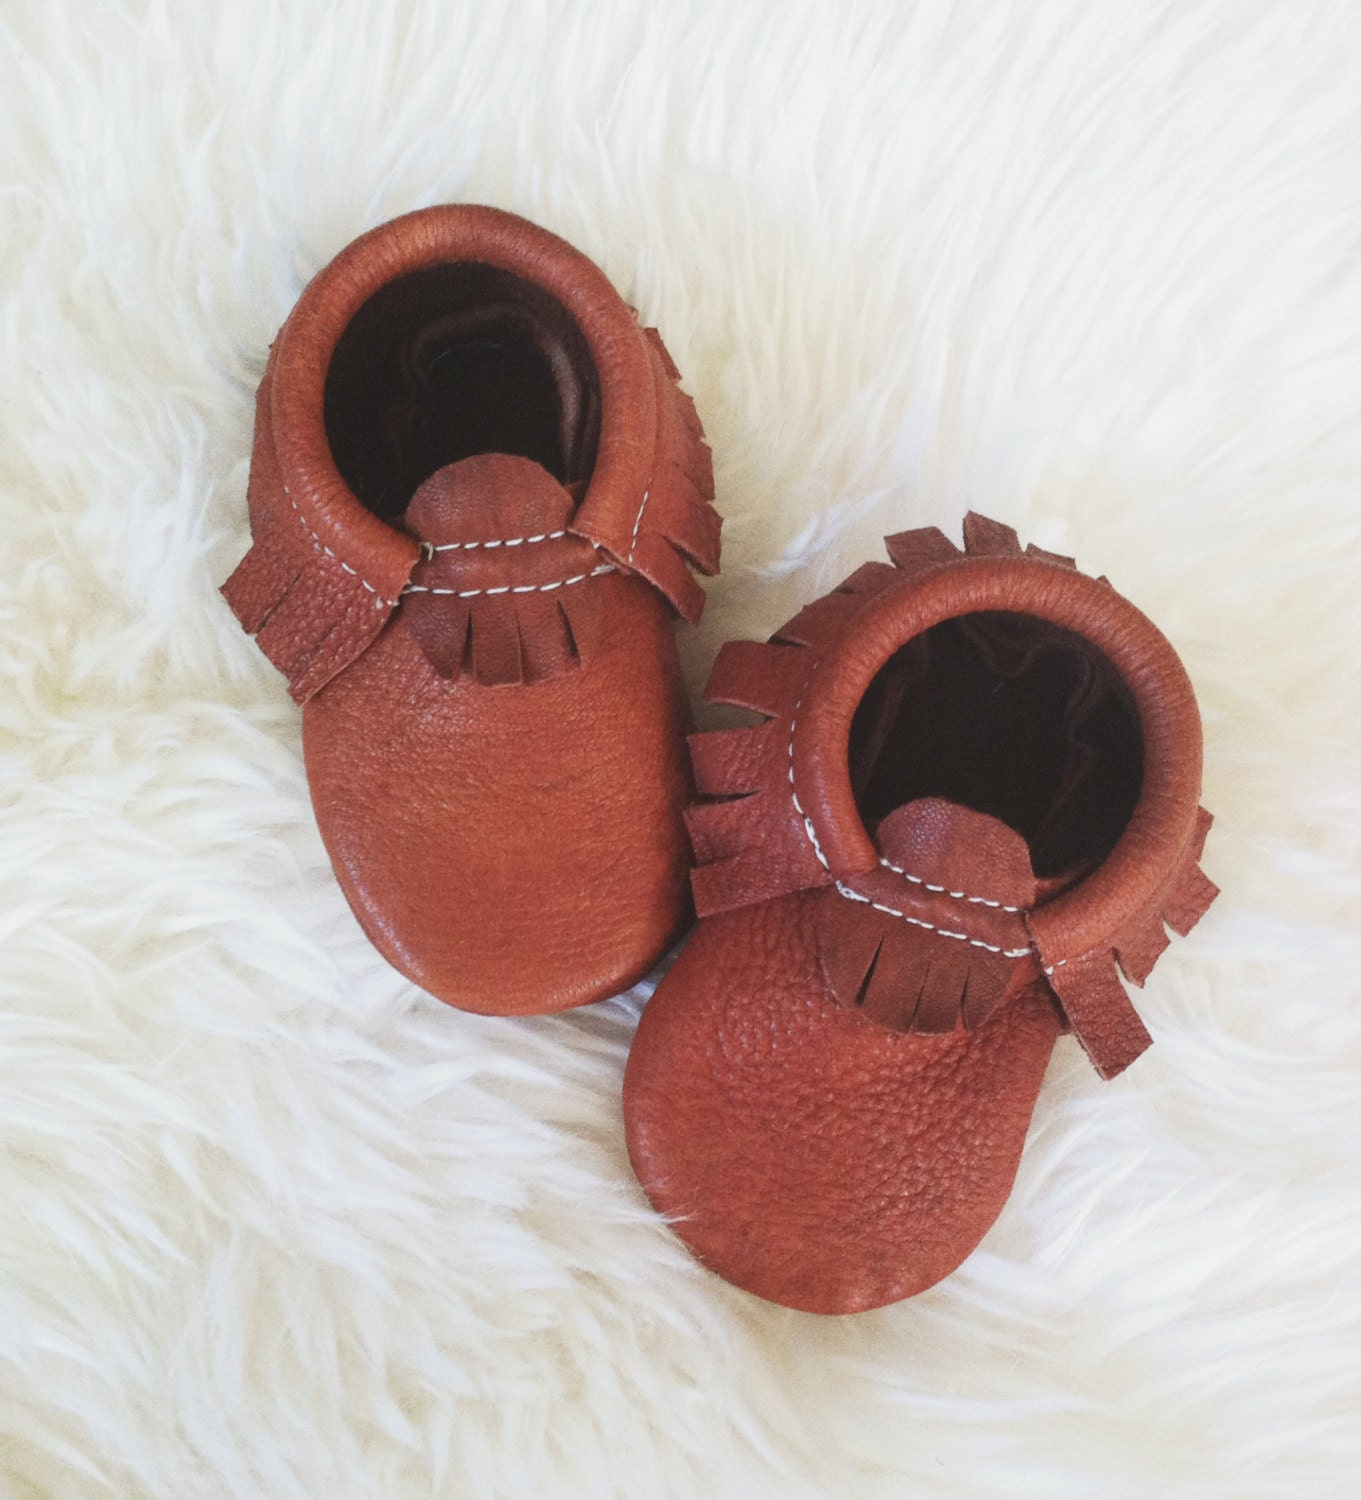 At Freshly Picked, we design unique, premium and useful products for families. Our classic diaper bag, soft-sole baby moccasins, and kids' sneakers are made to be durable, functional, and look amazing. Our purpose is to provide families with product and inspiration .